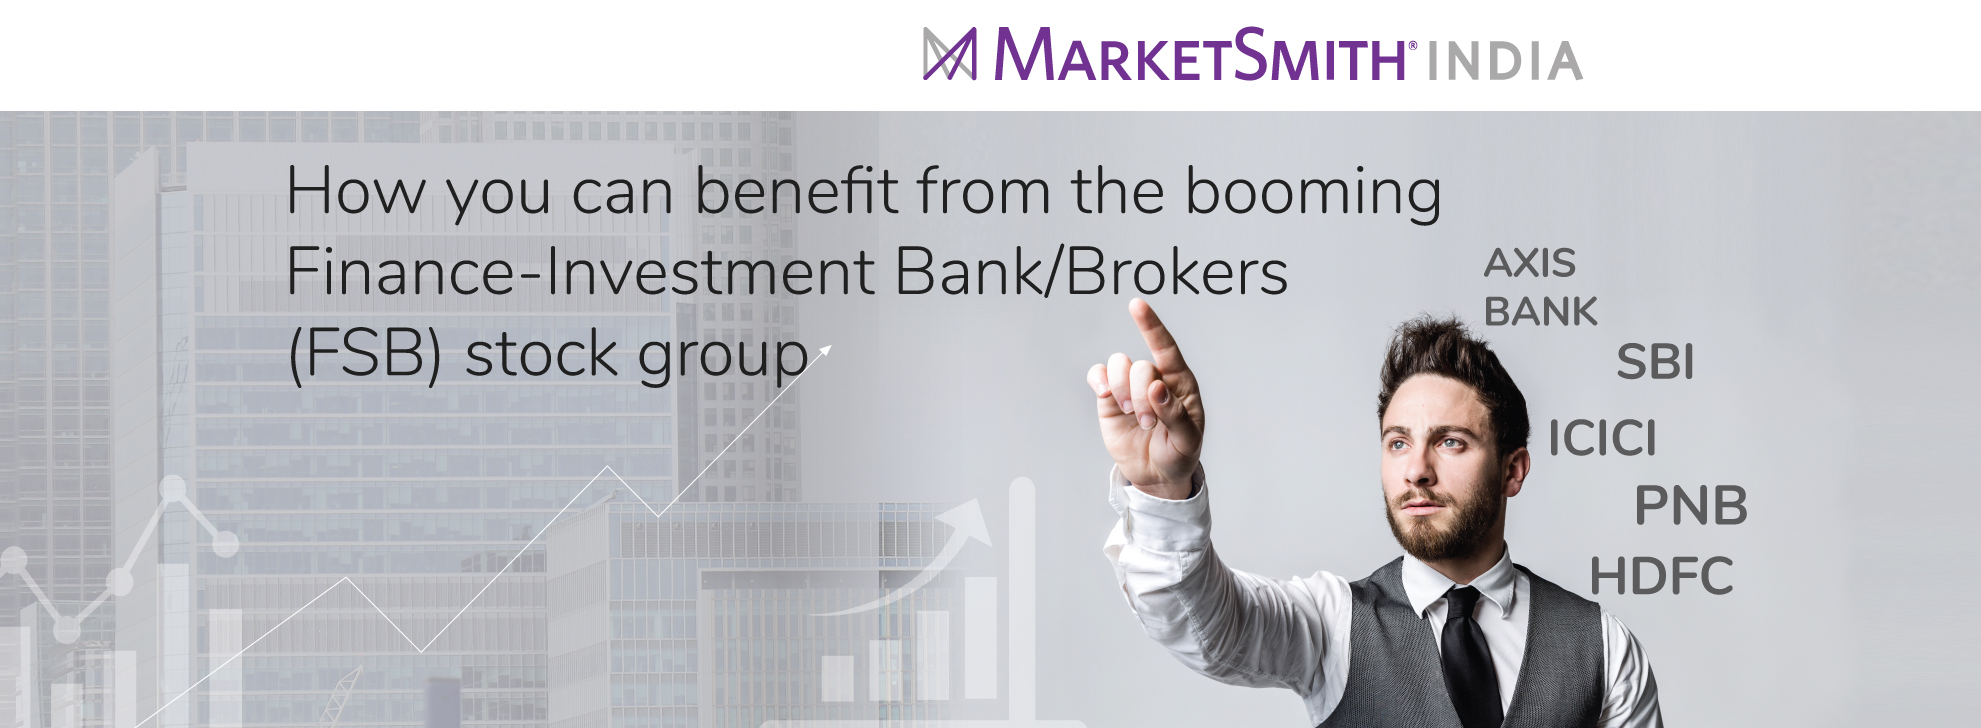 How you can benefit from the booming Finance-Investment Bank/Brokers (FSB) stock group- MarketSmith India